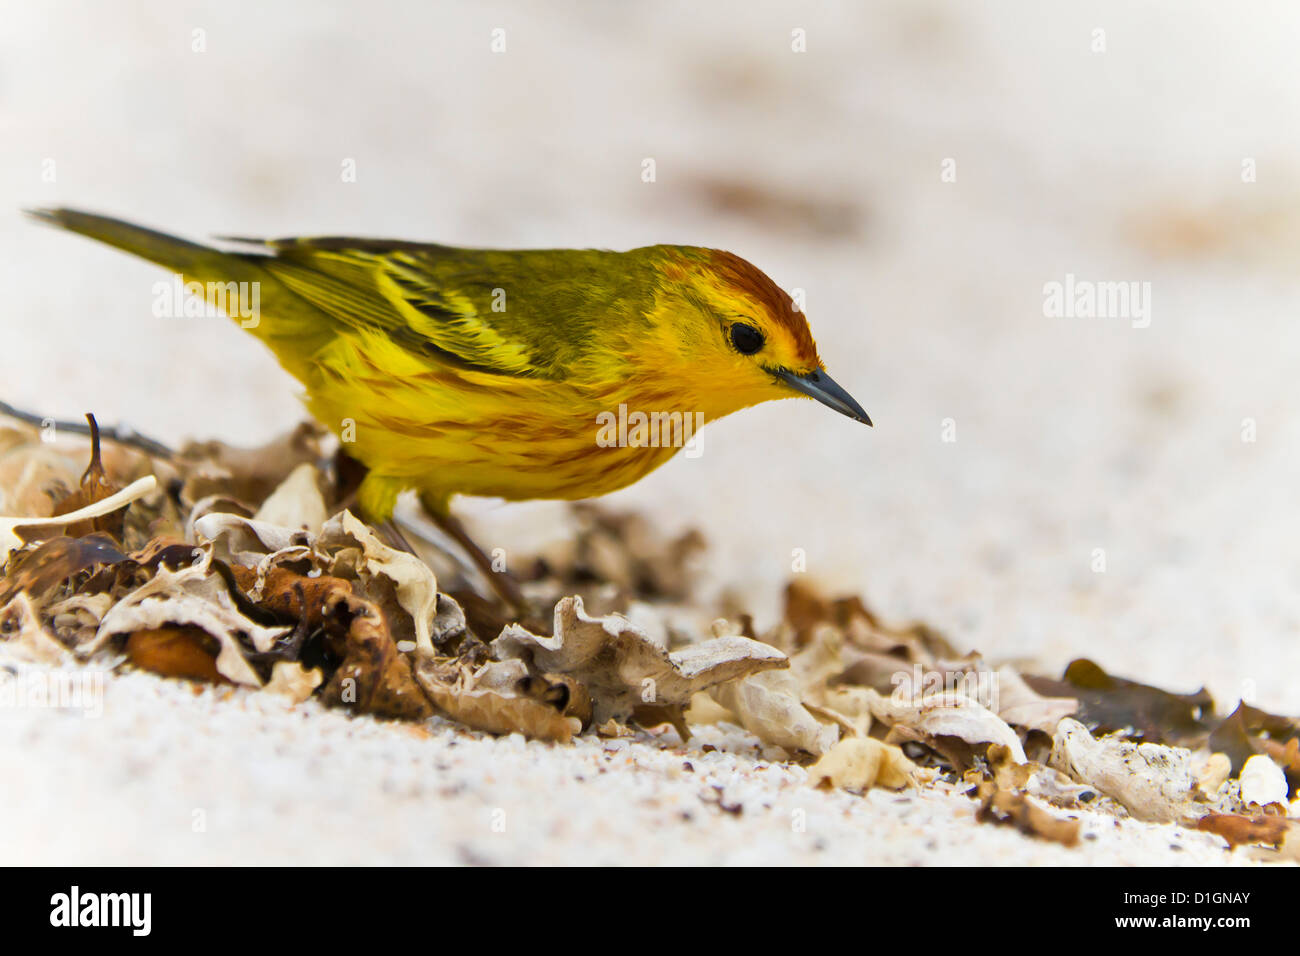 Adult yellow warbler (Dendroica petechia aureola), Santiago Island, Galapagos Islands, UNESCO World Heritge Site, - Stock Image